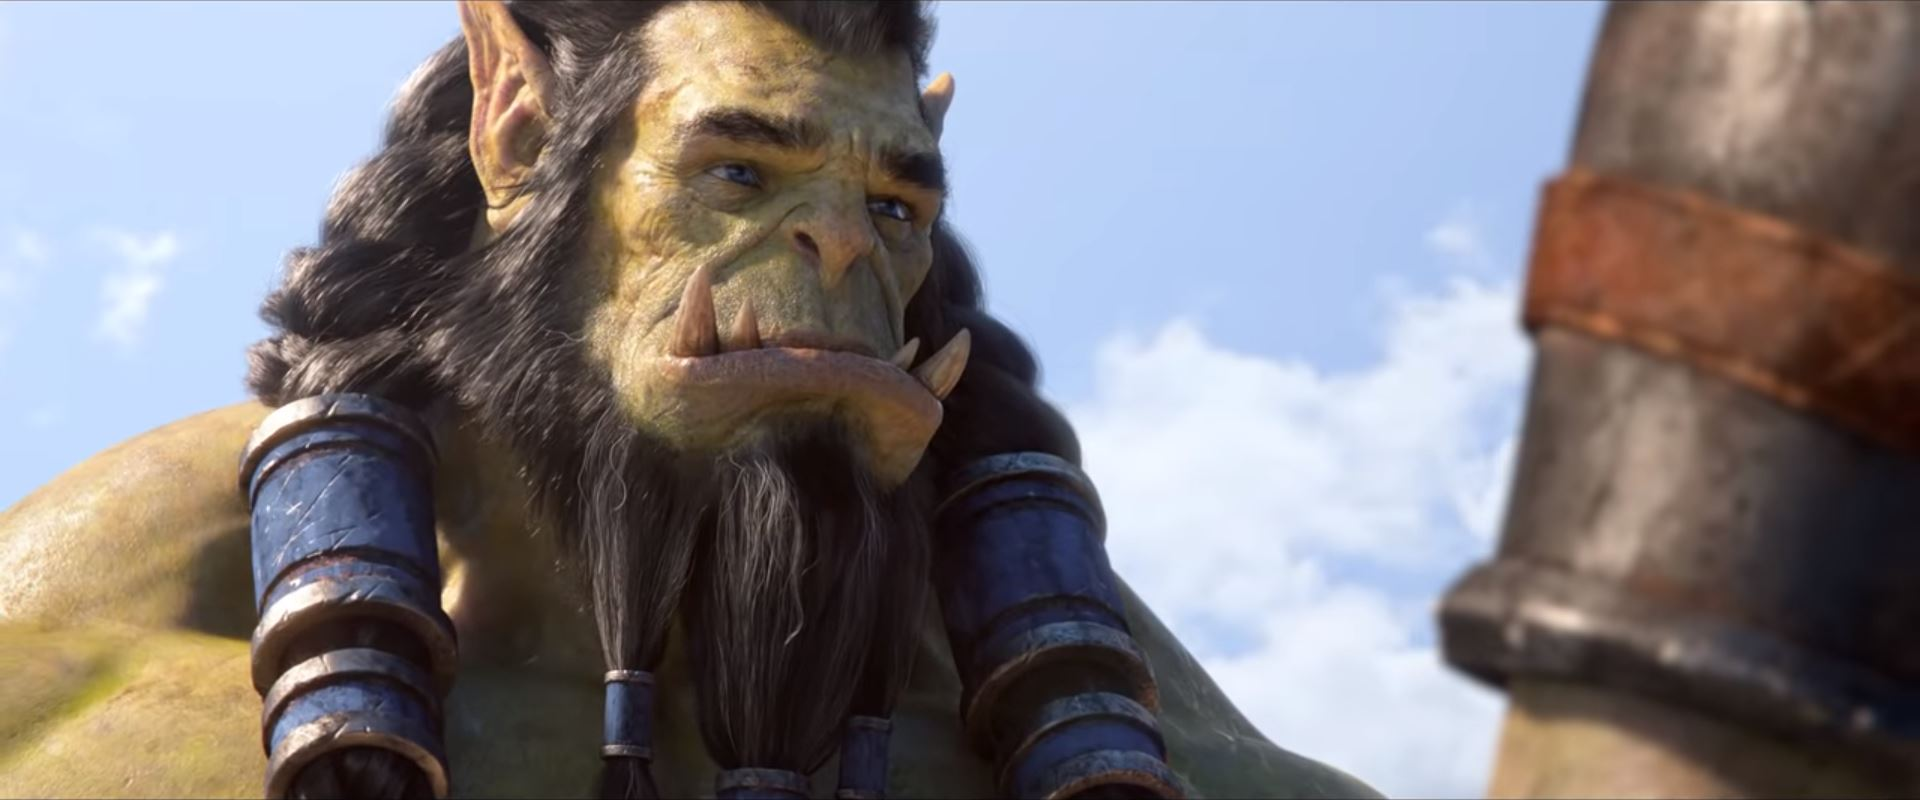 World Of Warcraft Thrall Returns In New Cinematic Den Of Geek